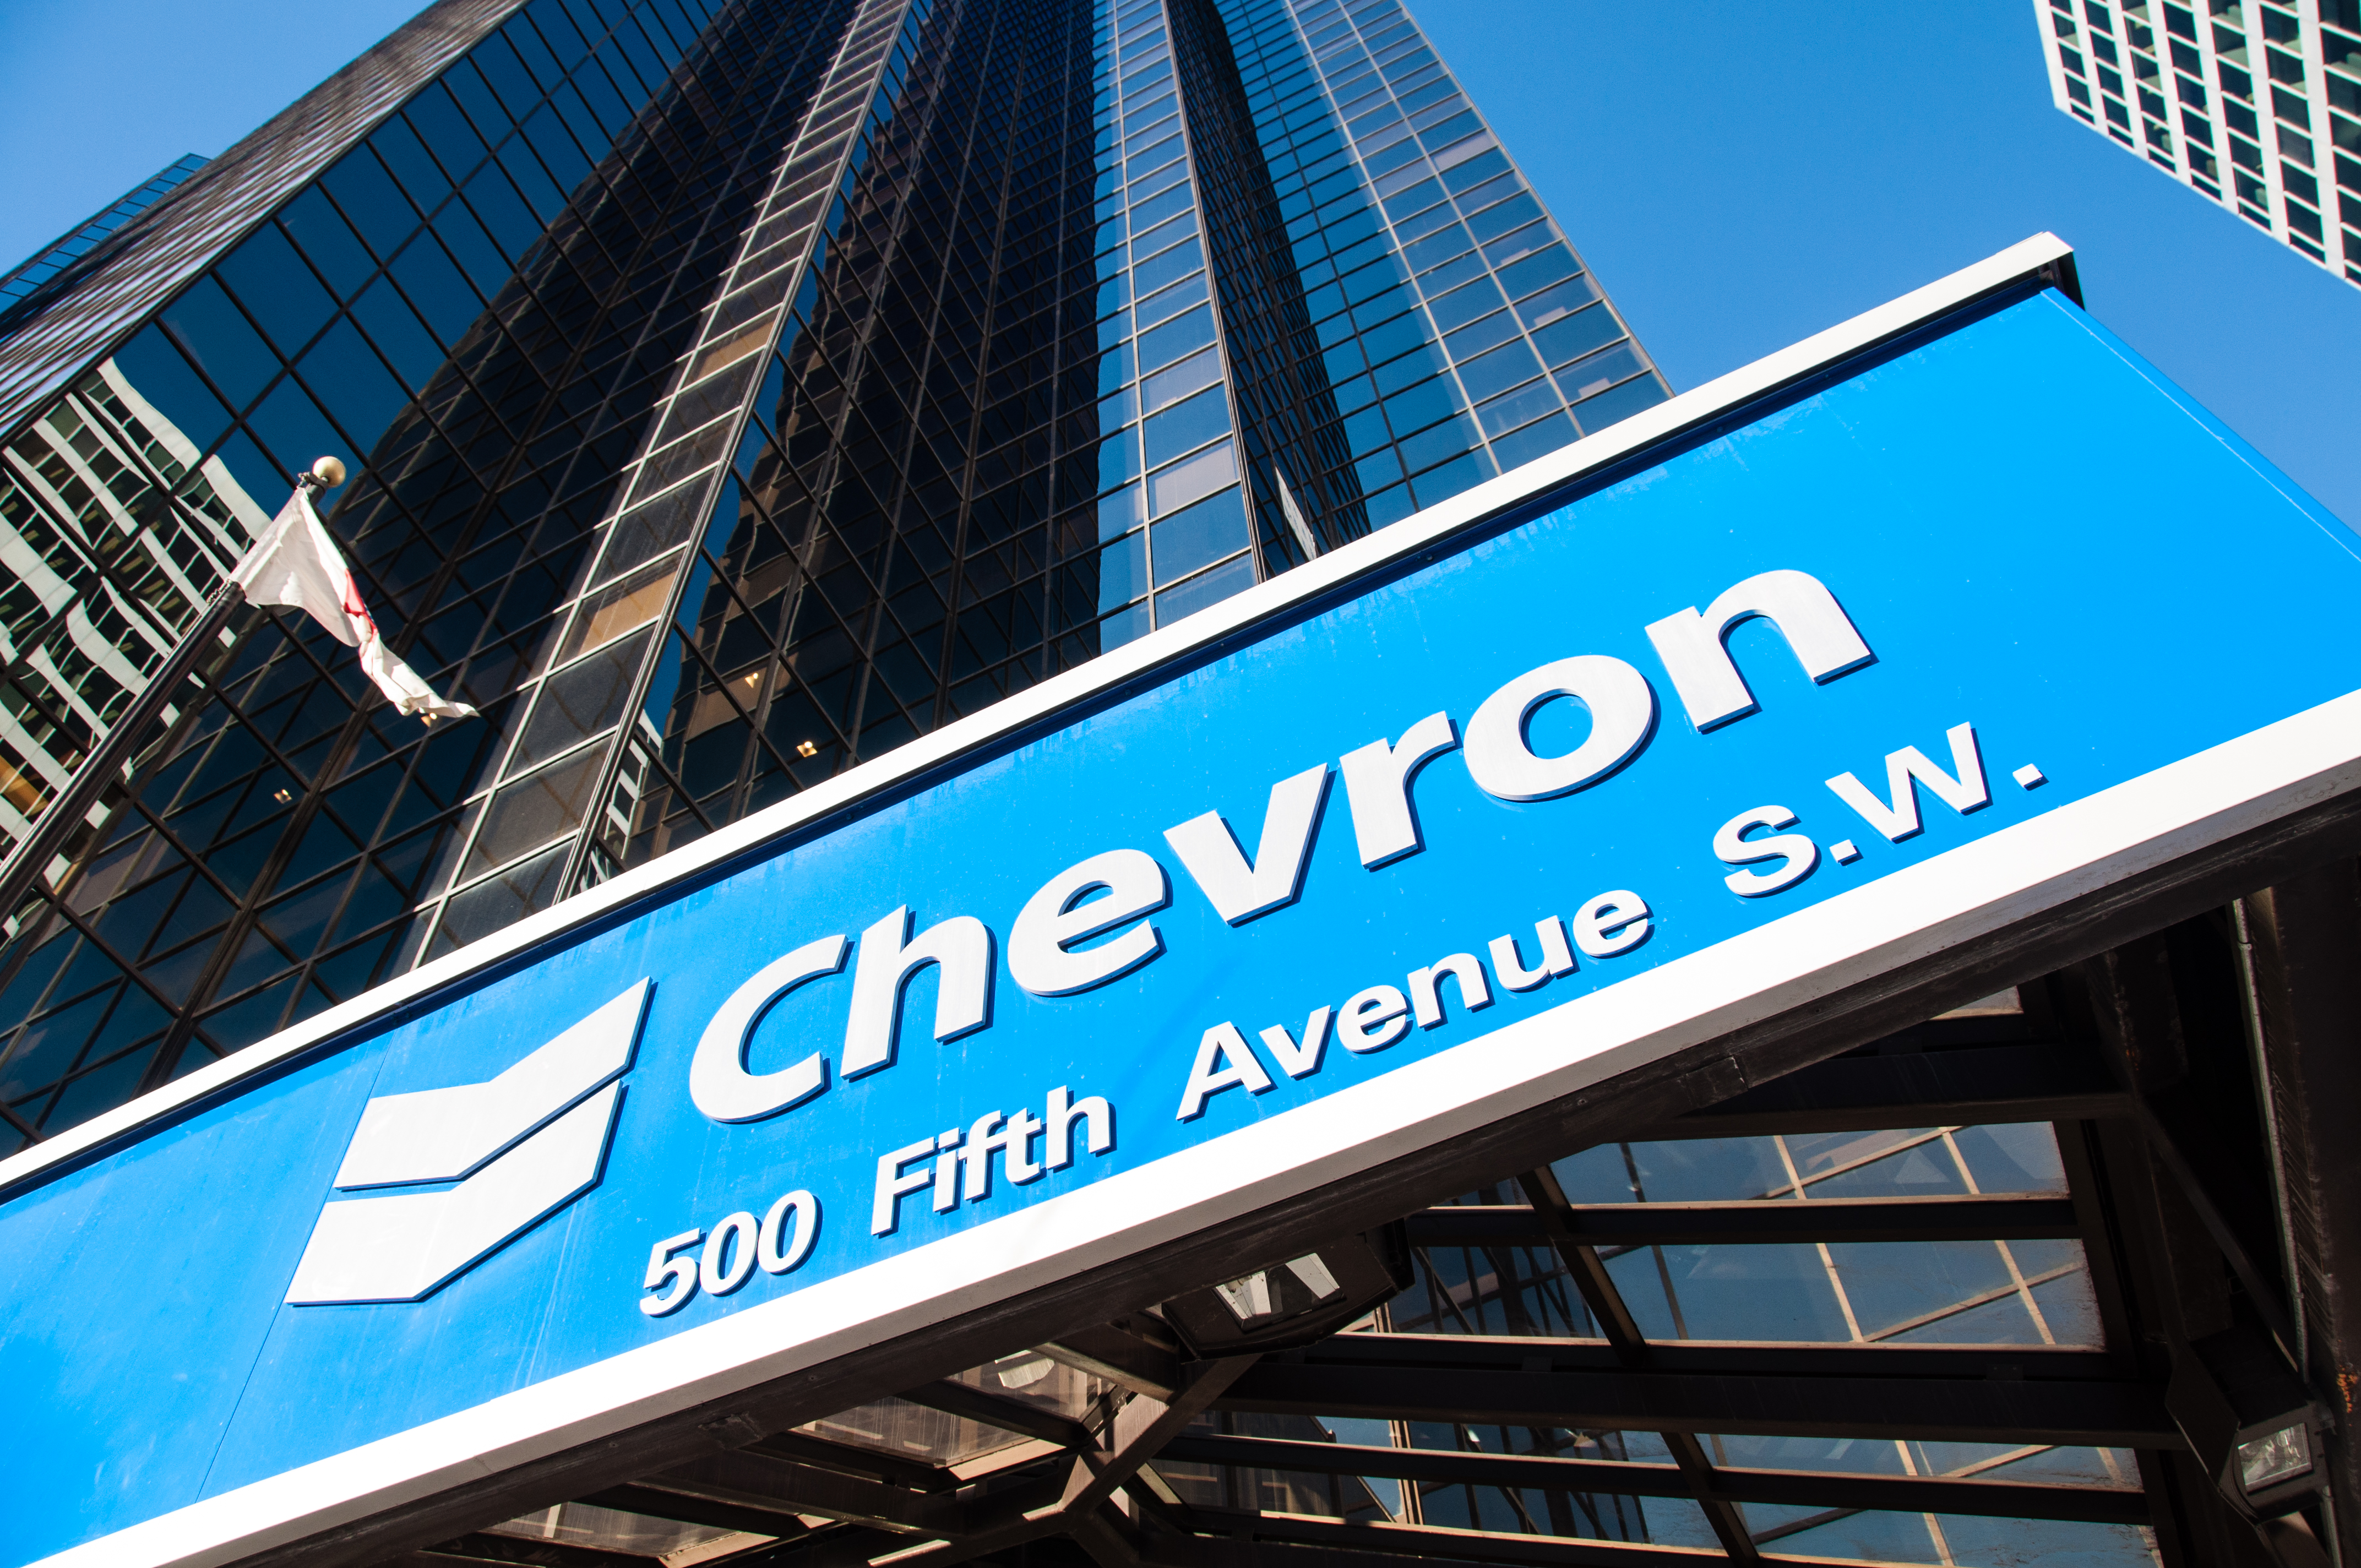 Calgary, Alberta, Canada - November 14, 2013: Chevron Oil s head office in Calgary Alberta. Chevron is one of the developers of the Alberta Oil sands, and a global energy company based in the USA.